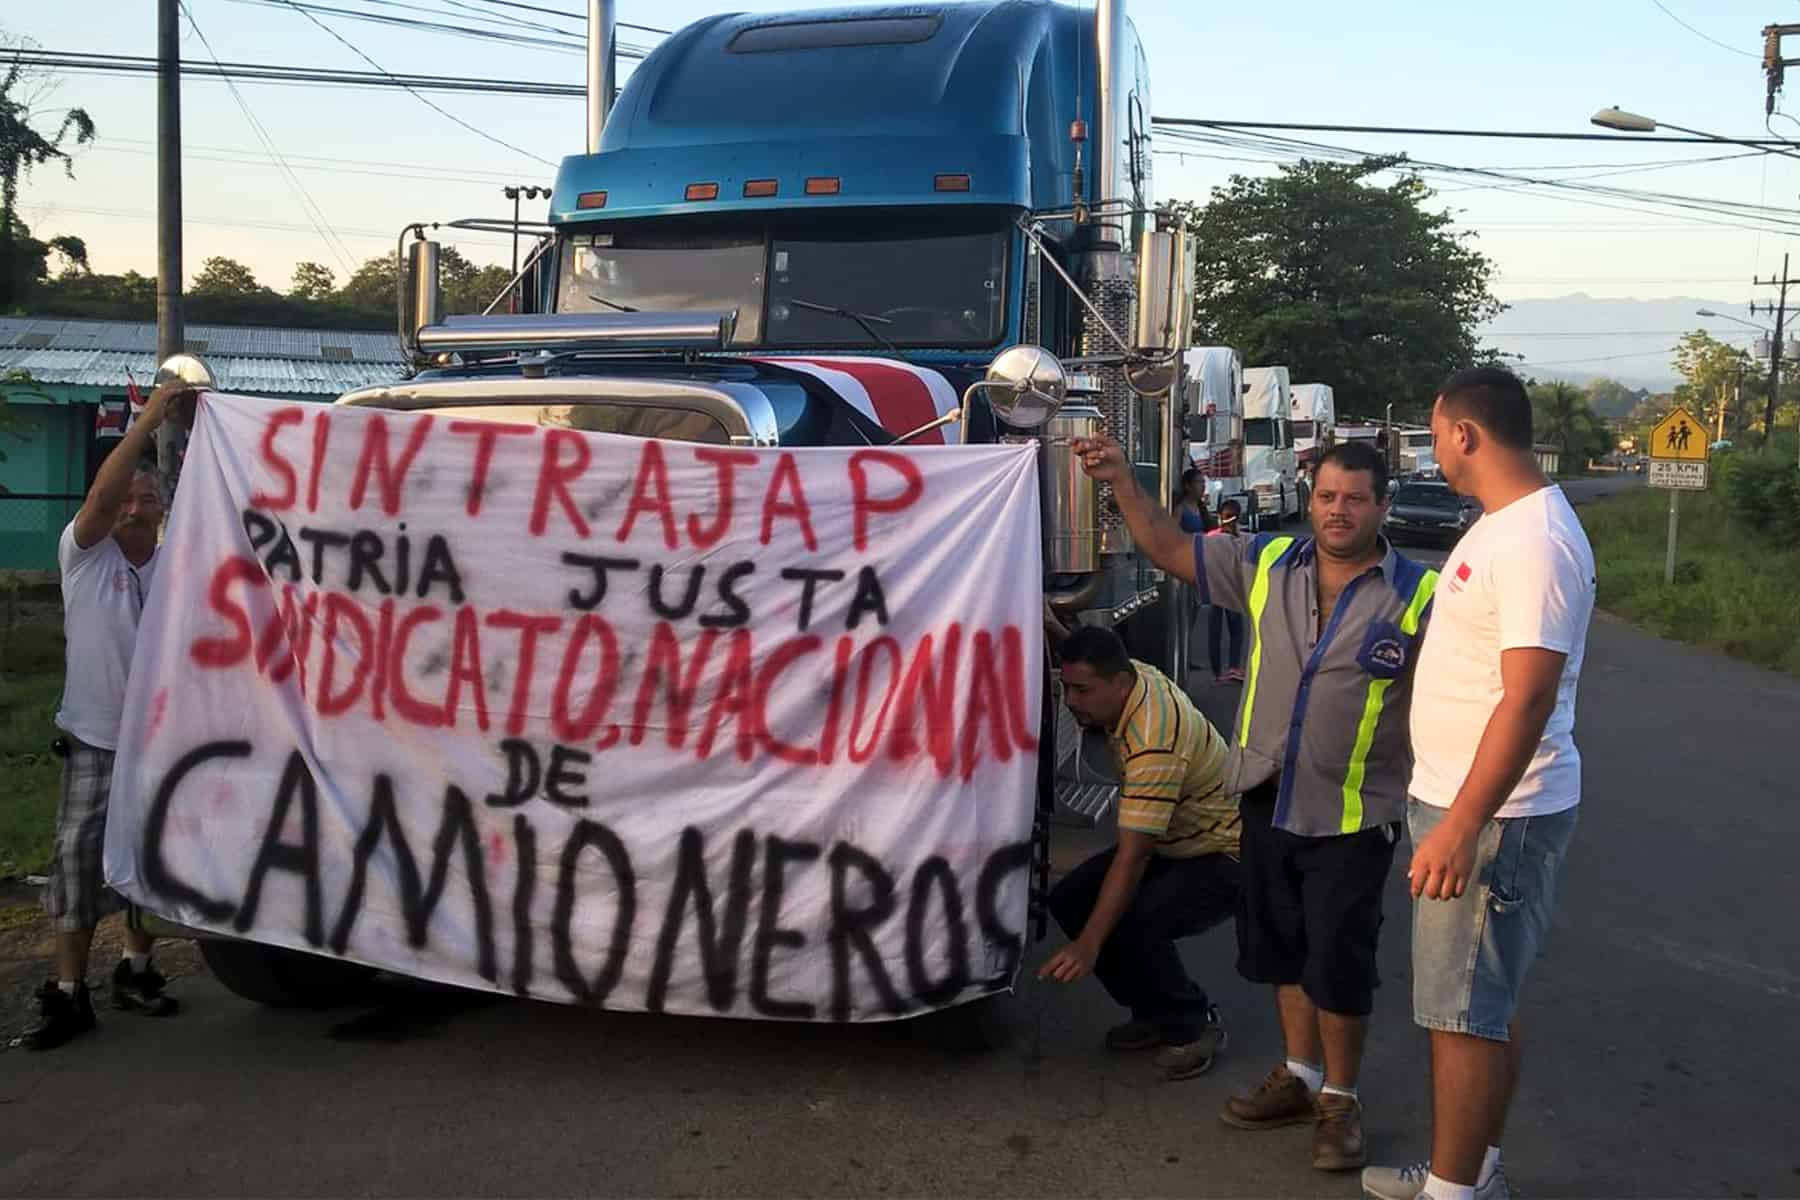 Truck drivers' demonstration, Sept. 21 2015